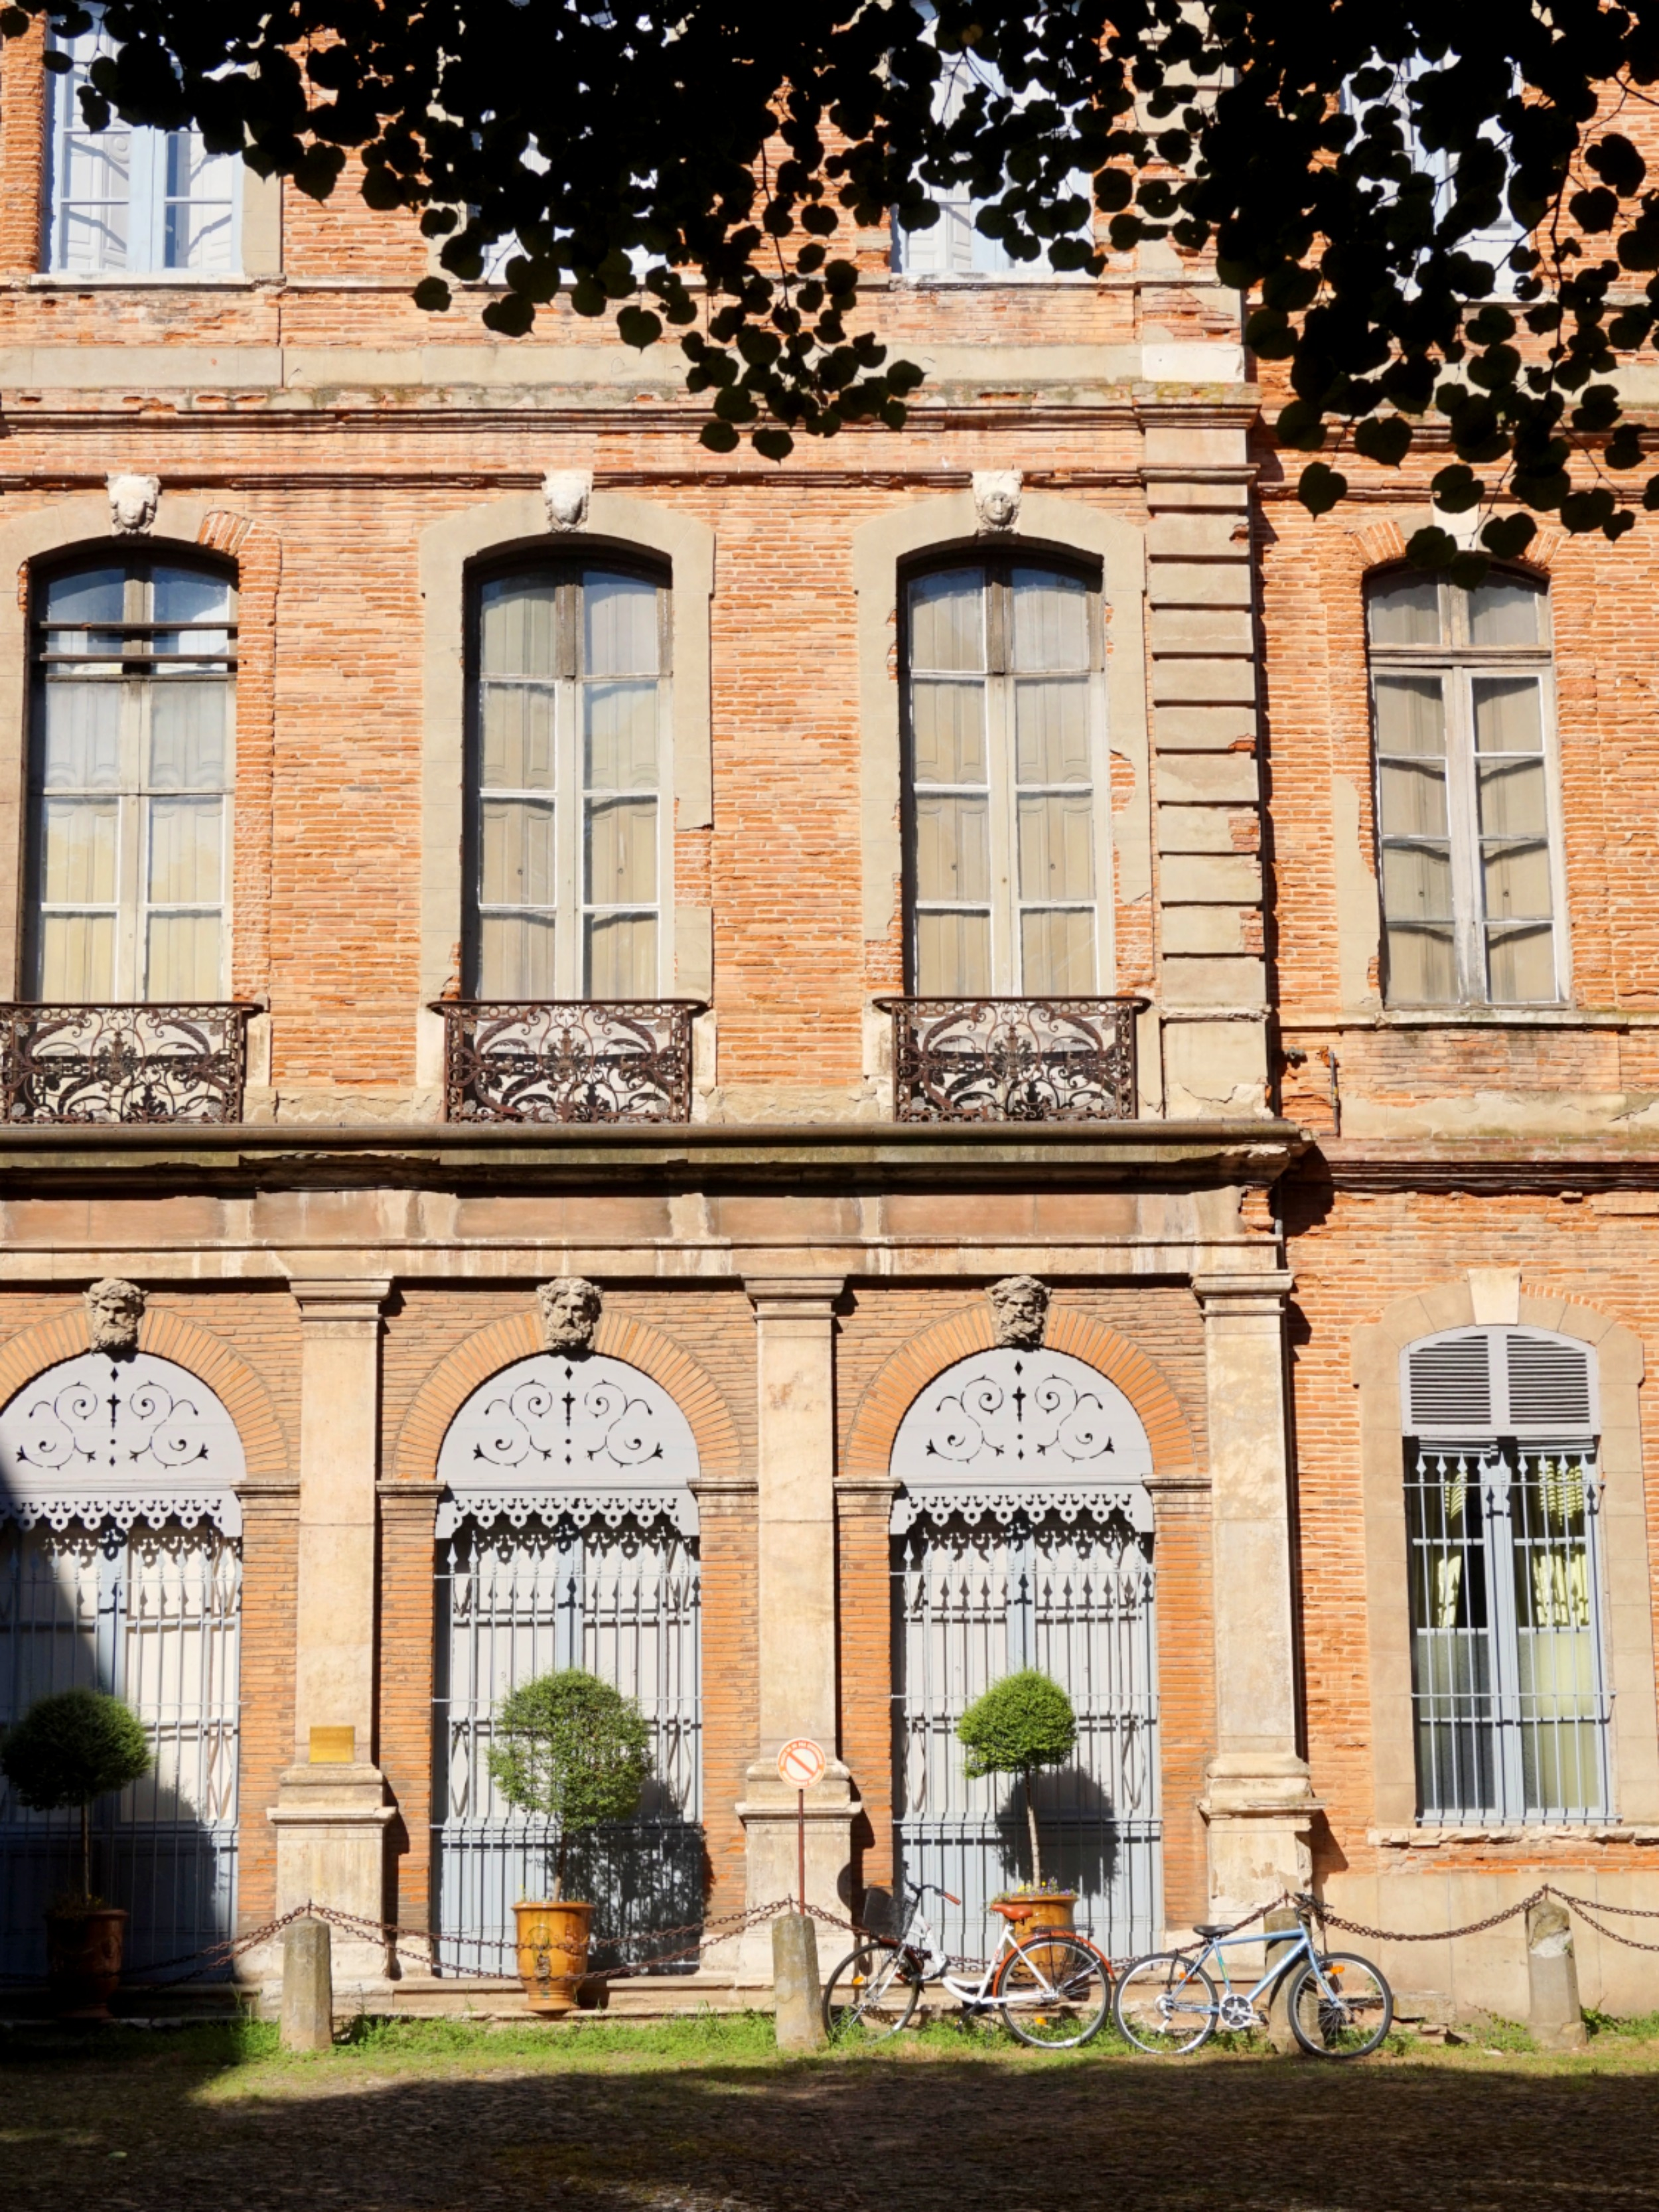 Balade-Toulouse-St-Etienne-22